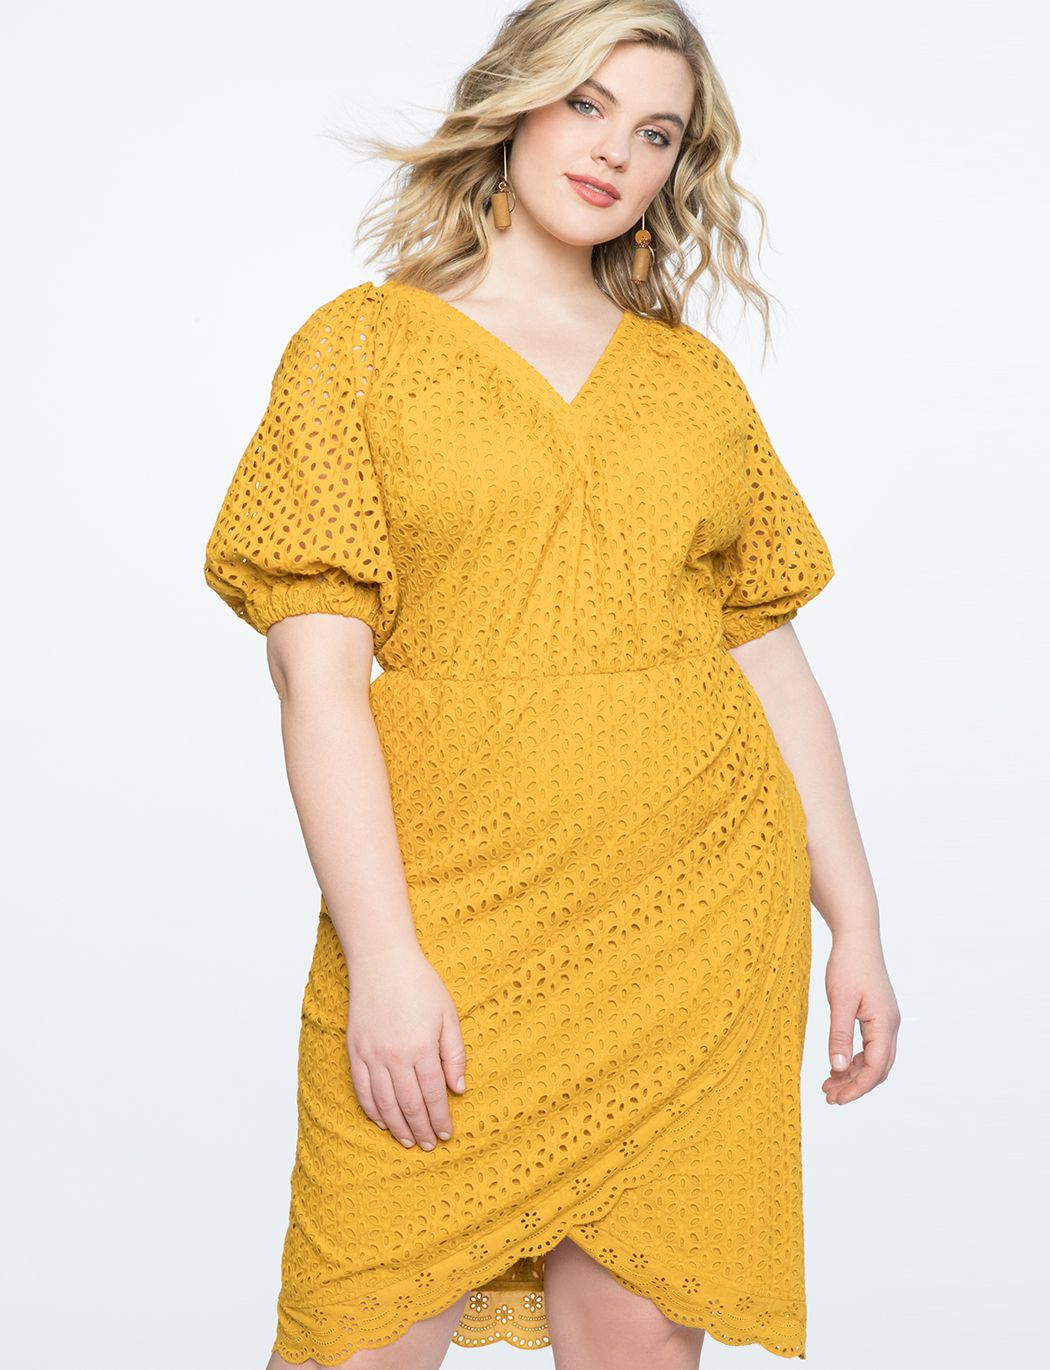 Puff Sleeve Eyelet Dress | Women\'s Plus Size Dresses in 2019 ...